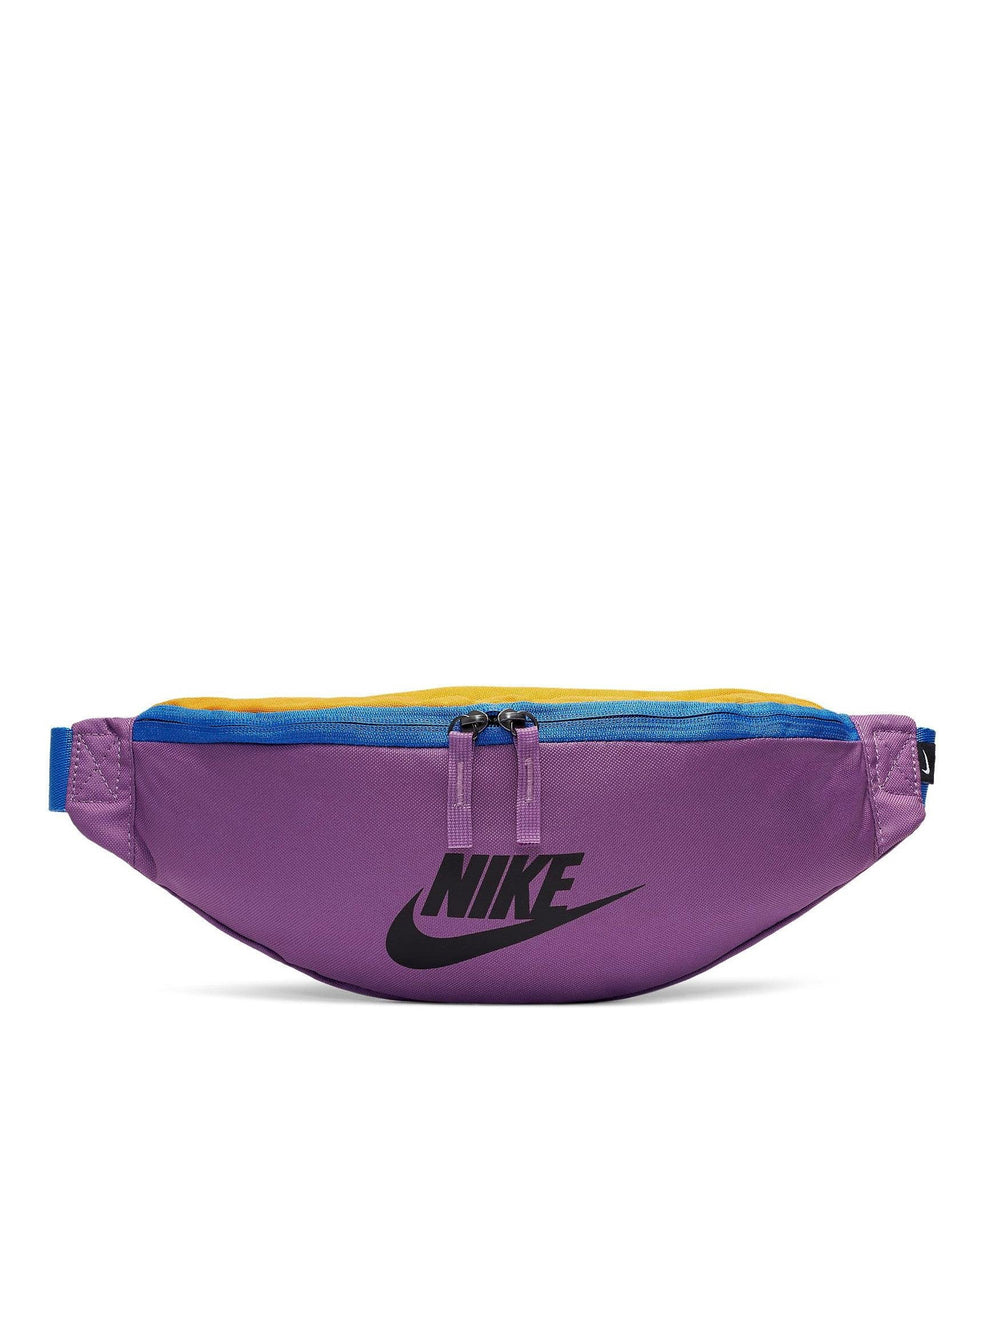 NIKE HERITAGE - PURPLE/BLUE